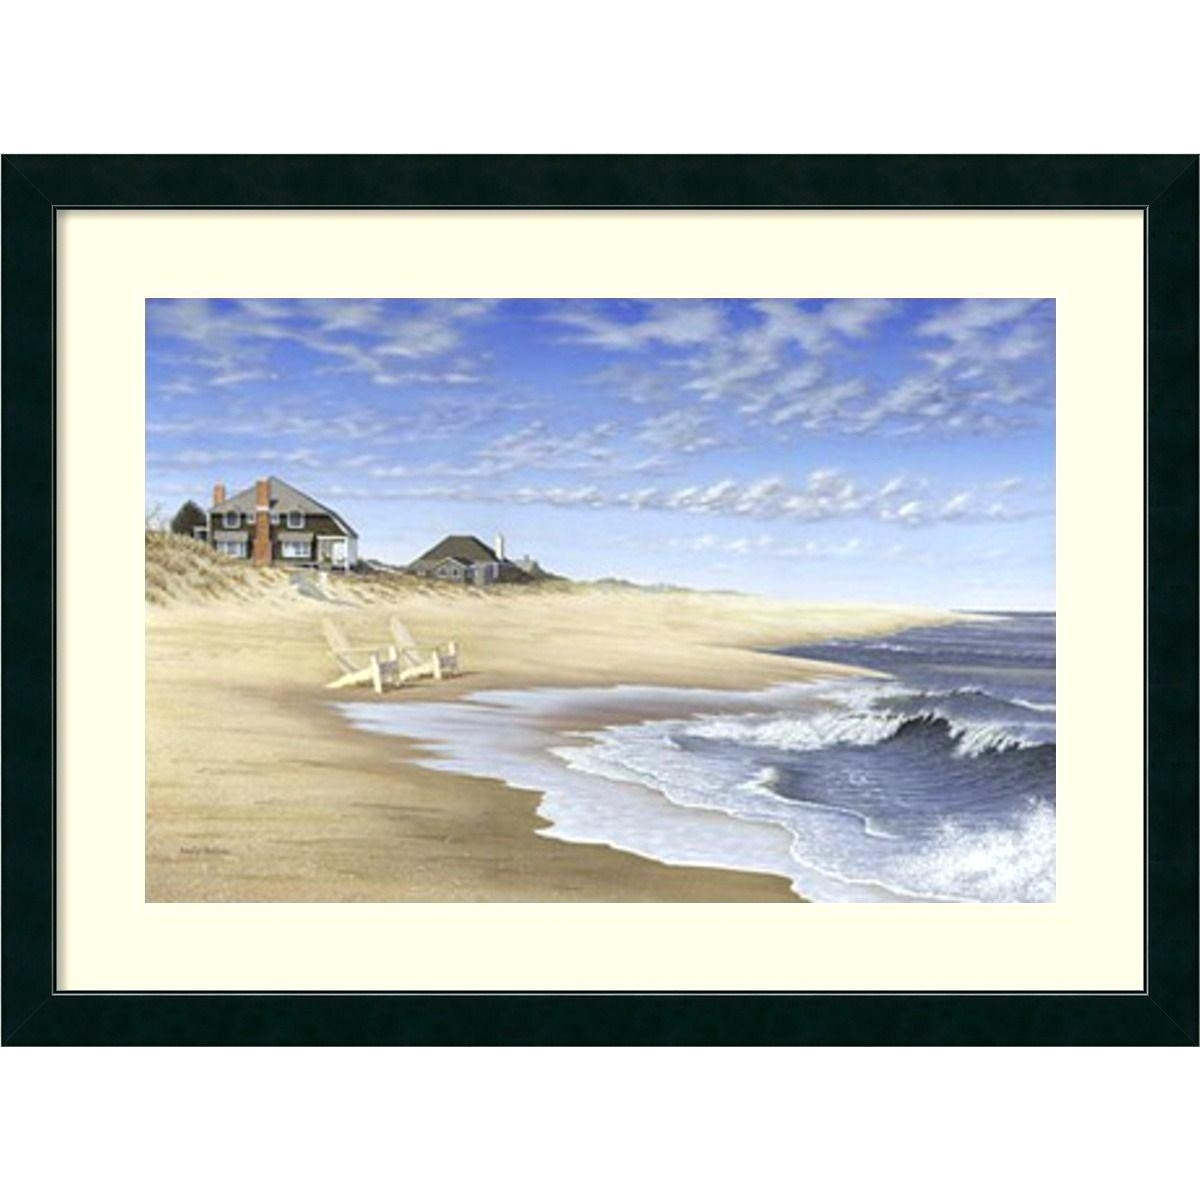 Framed Beach Art Canvas Prints Sale White Wall – Biophilessurf Pertaining To Most Popular Framed Beach Art Prints (Gallery 8 of 15)